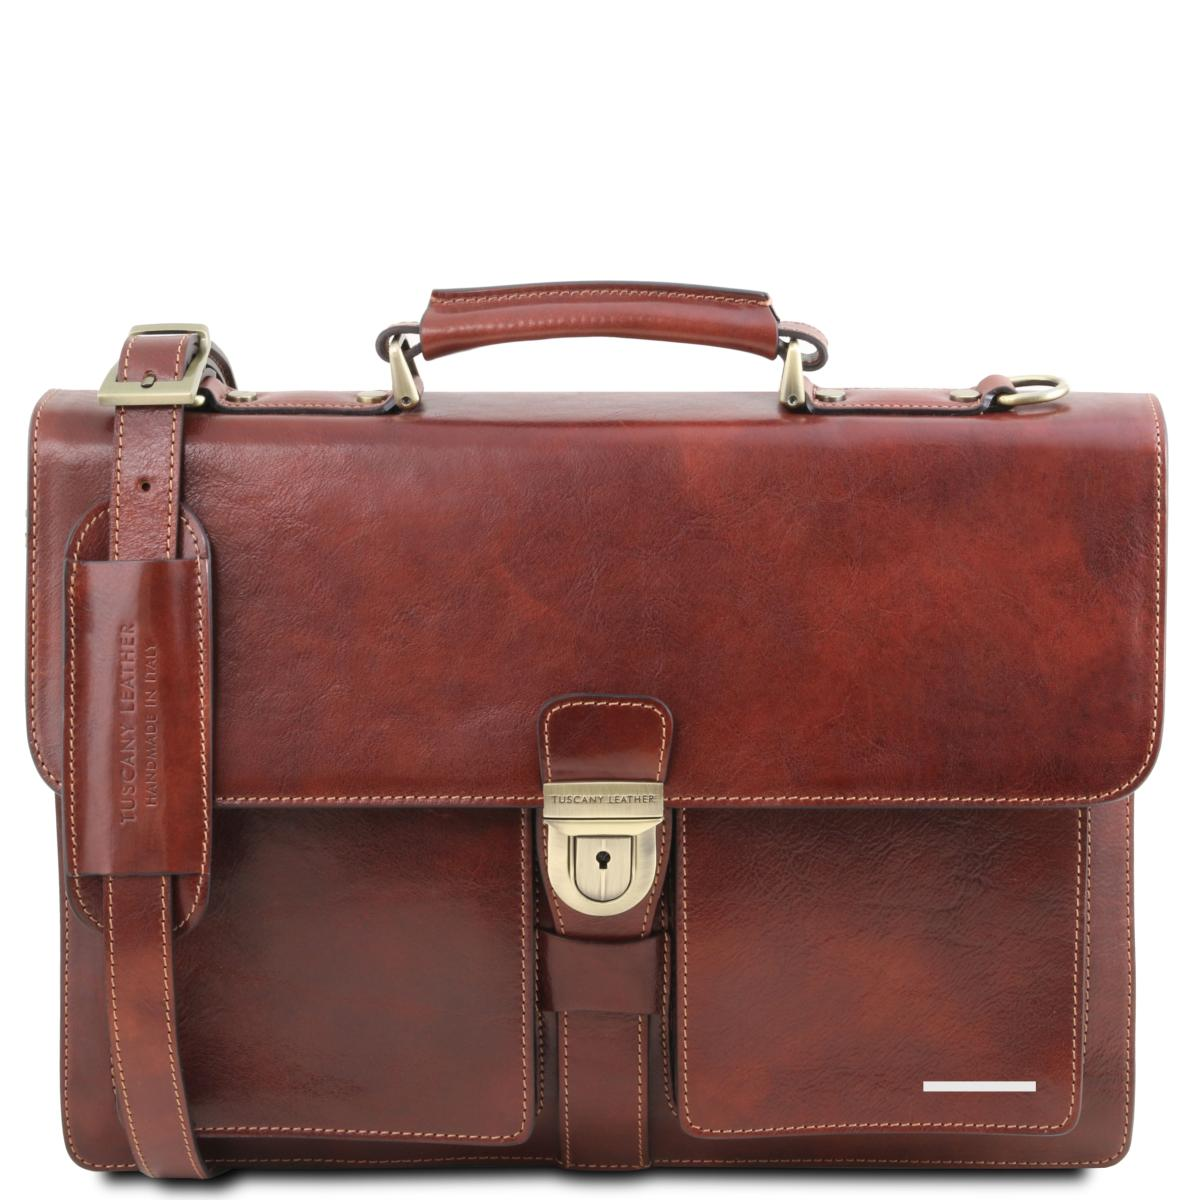 Cartable Tuscany Cuir Homme Lether 3 Compartiments Chic l5ucT3FK1J